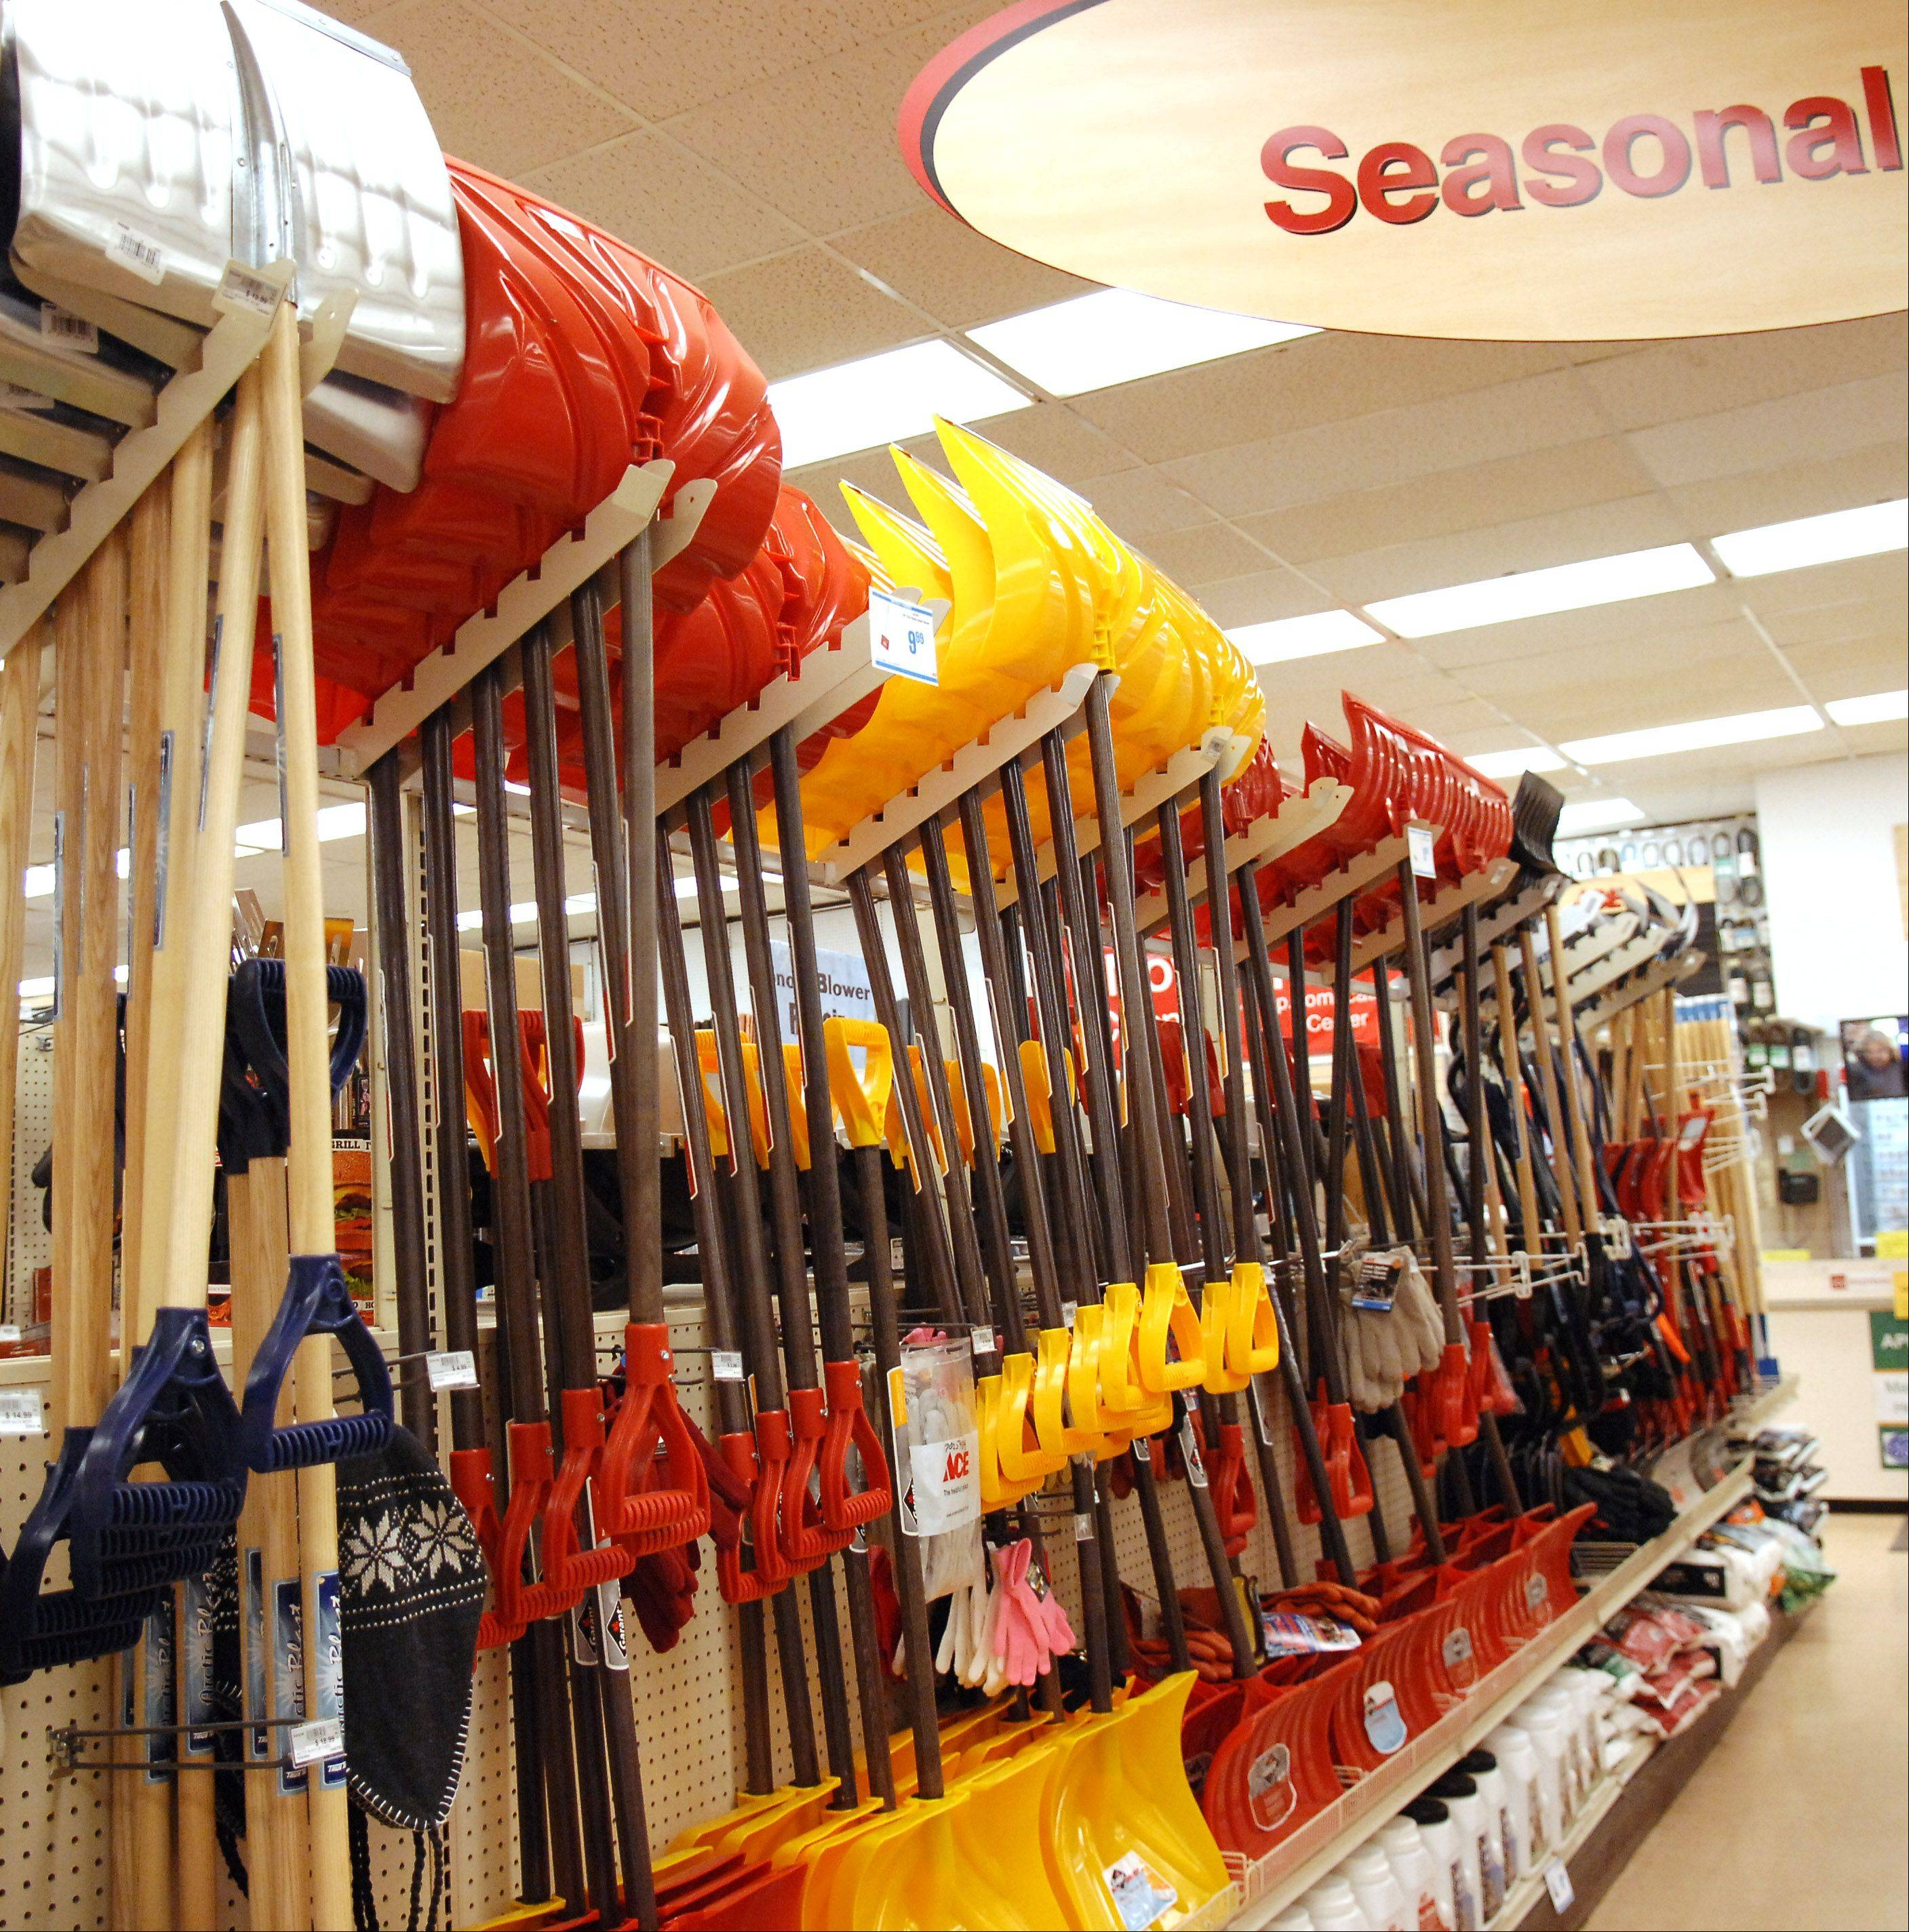 Shovels and ice scrapers are fully stocked at Ace Hardware in Elgin. The mild weather has slowed demand for snow removal items.